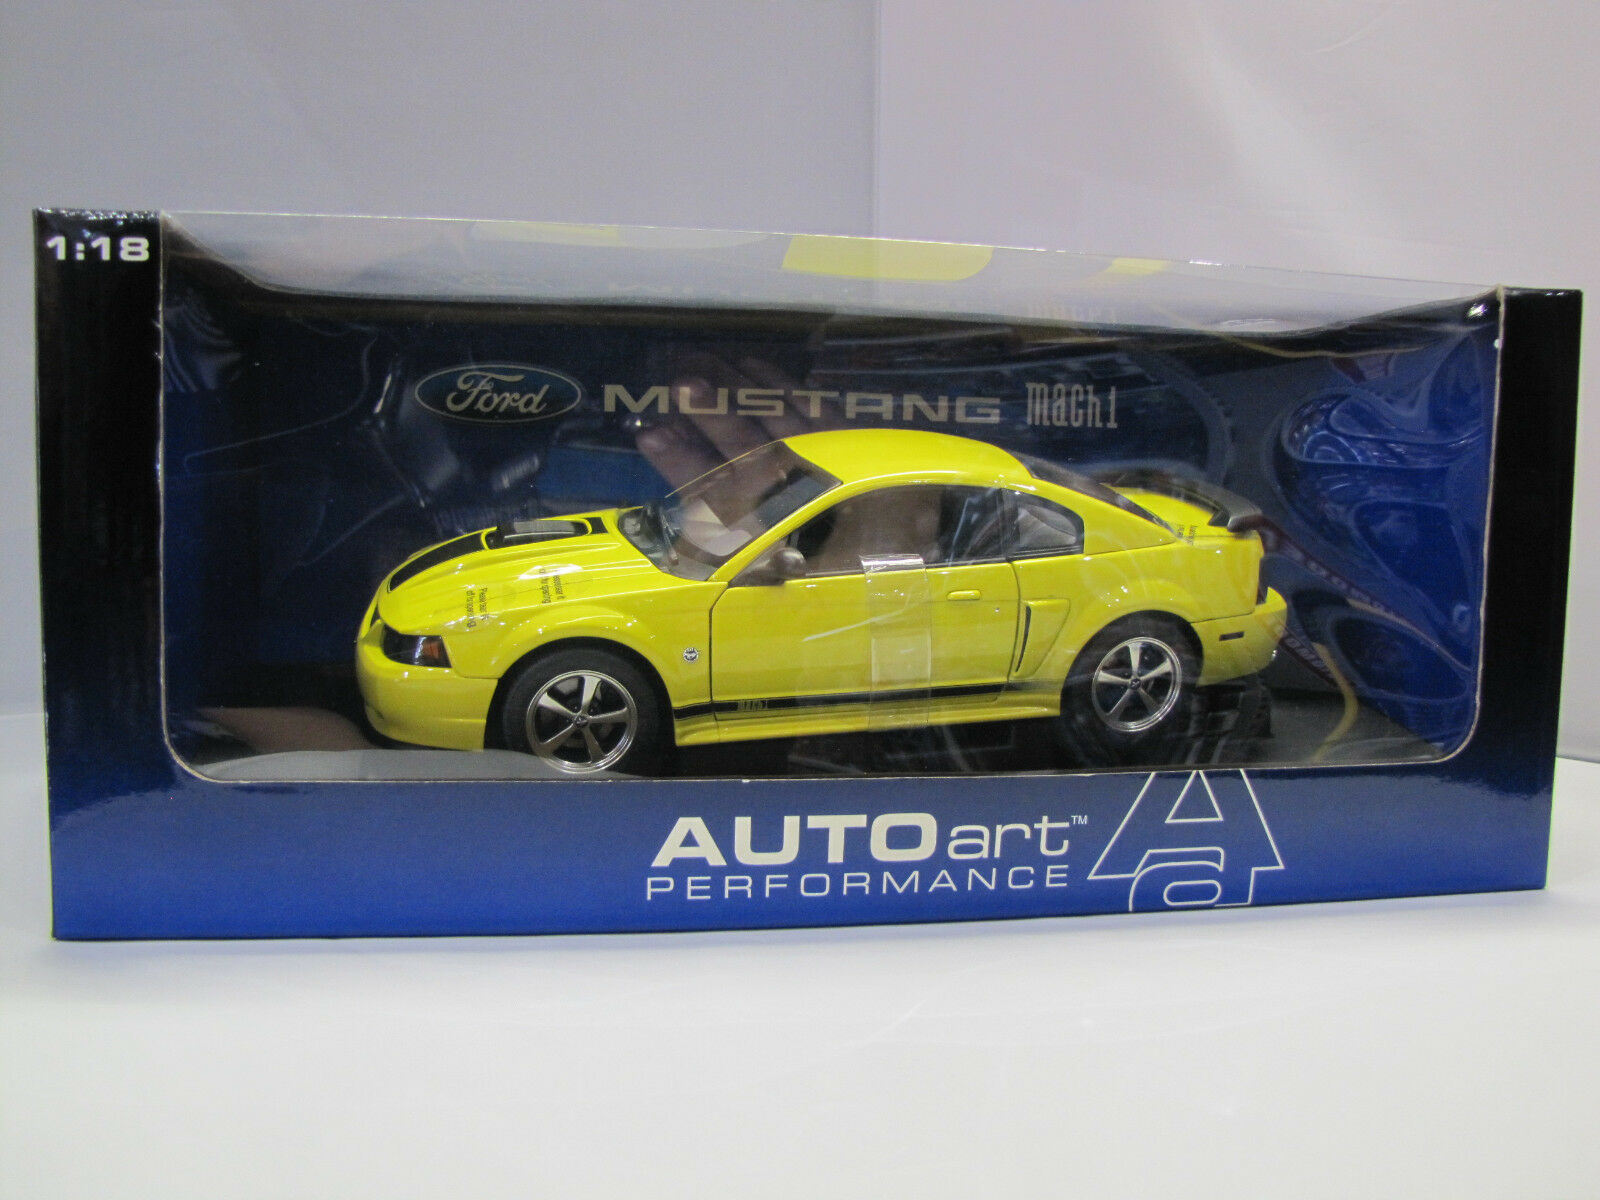 73006 Autoart Ford Mustang Mach 1 - 40th Anniversary 2004 Screaming giallo 1 18